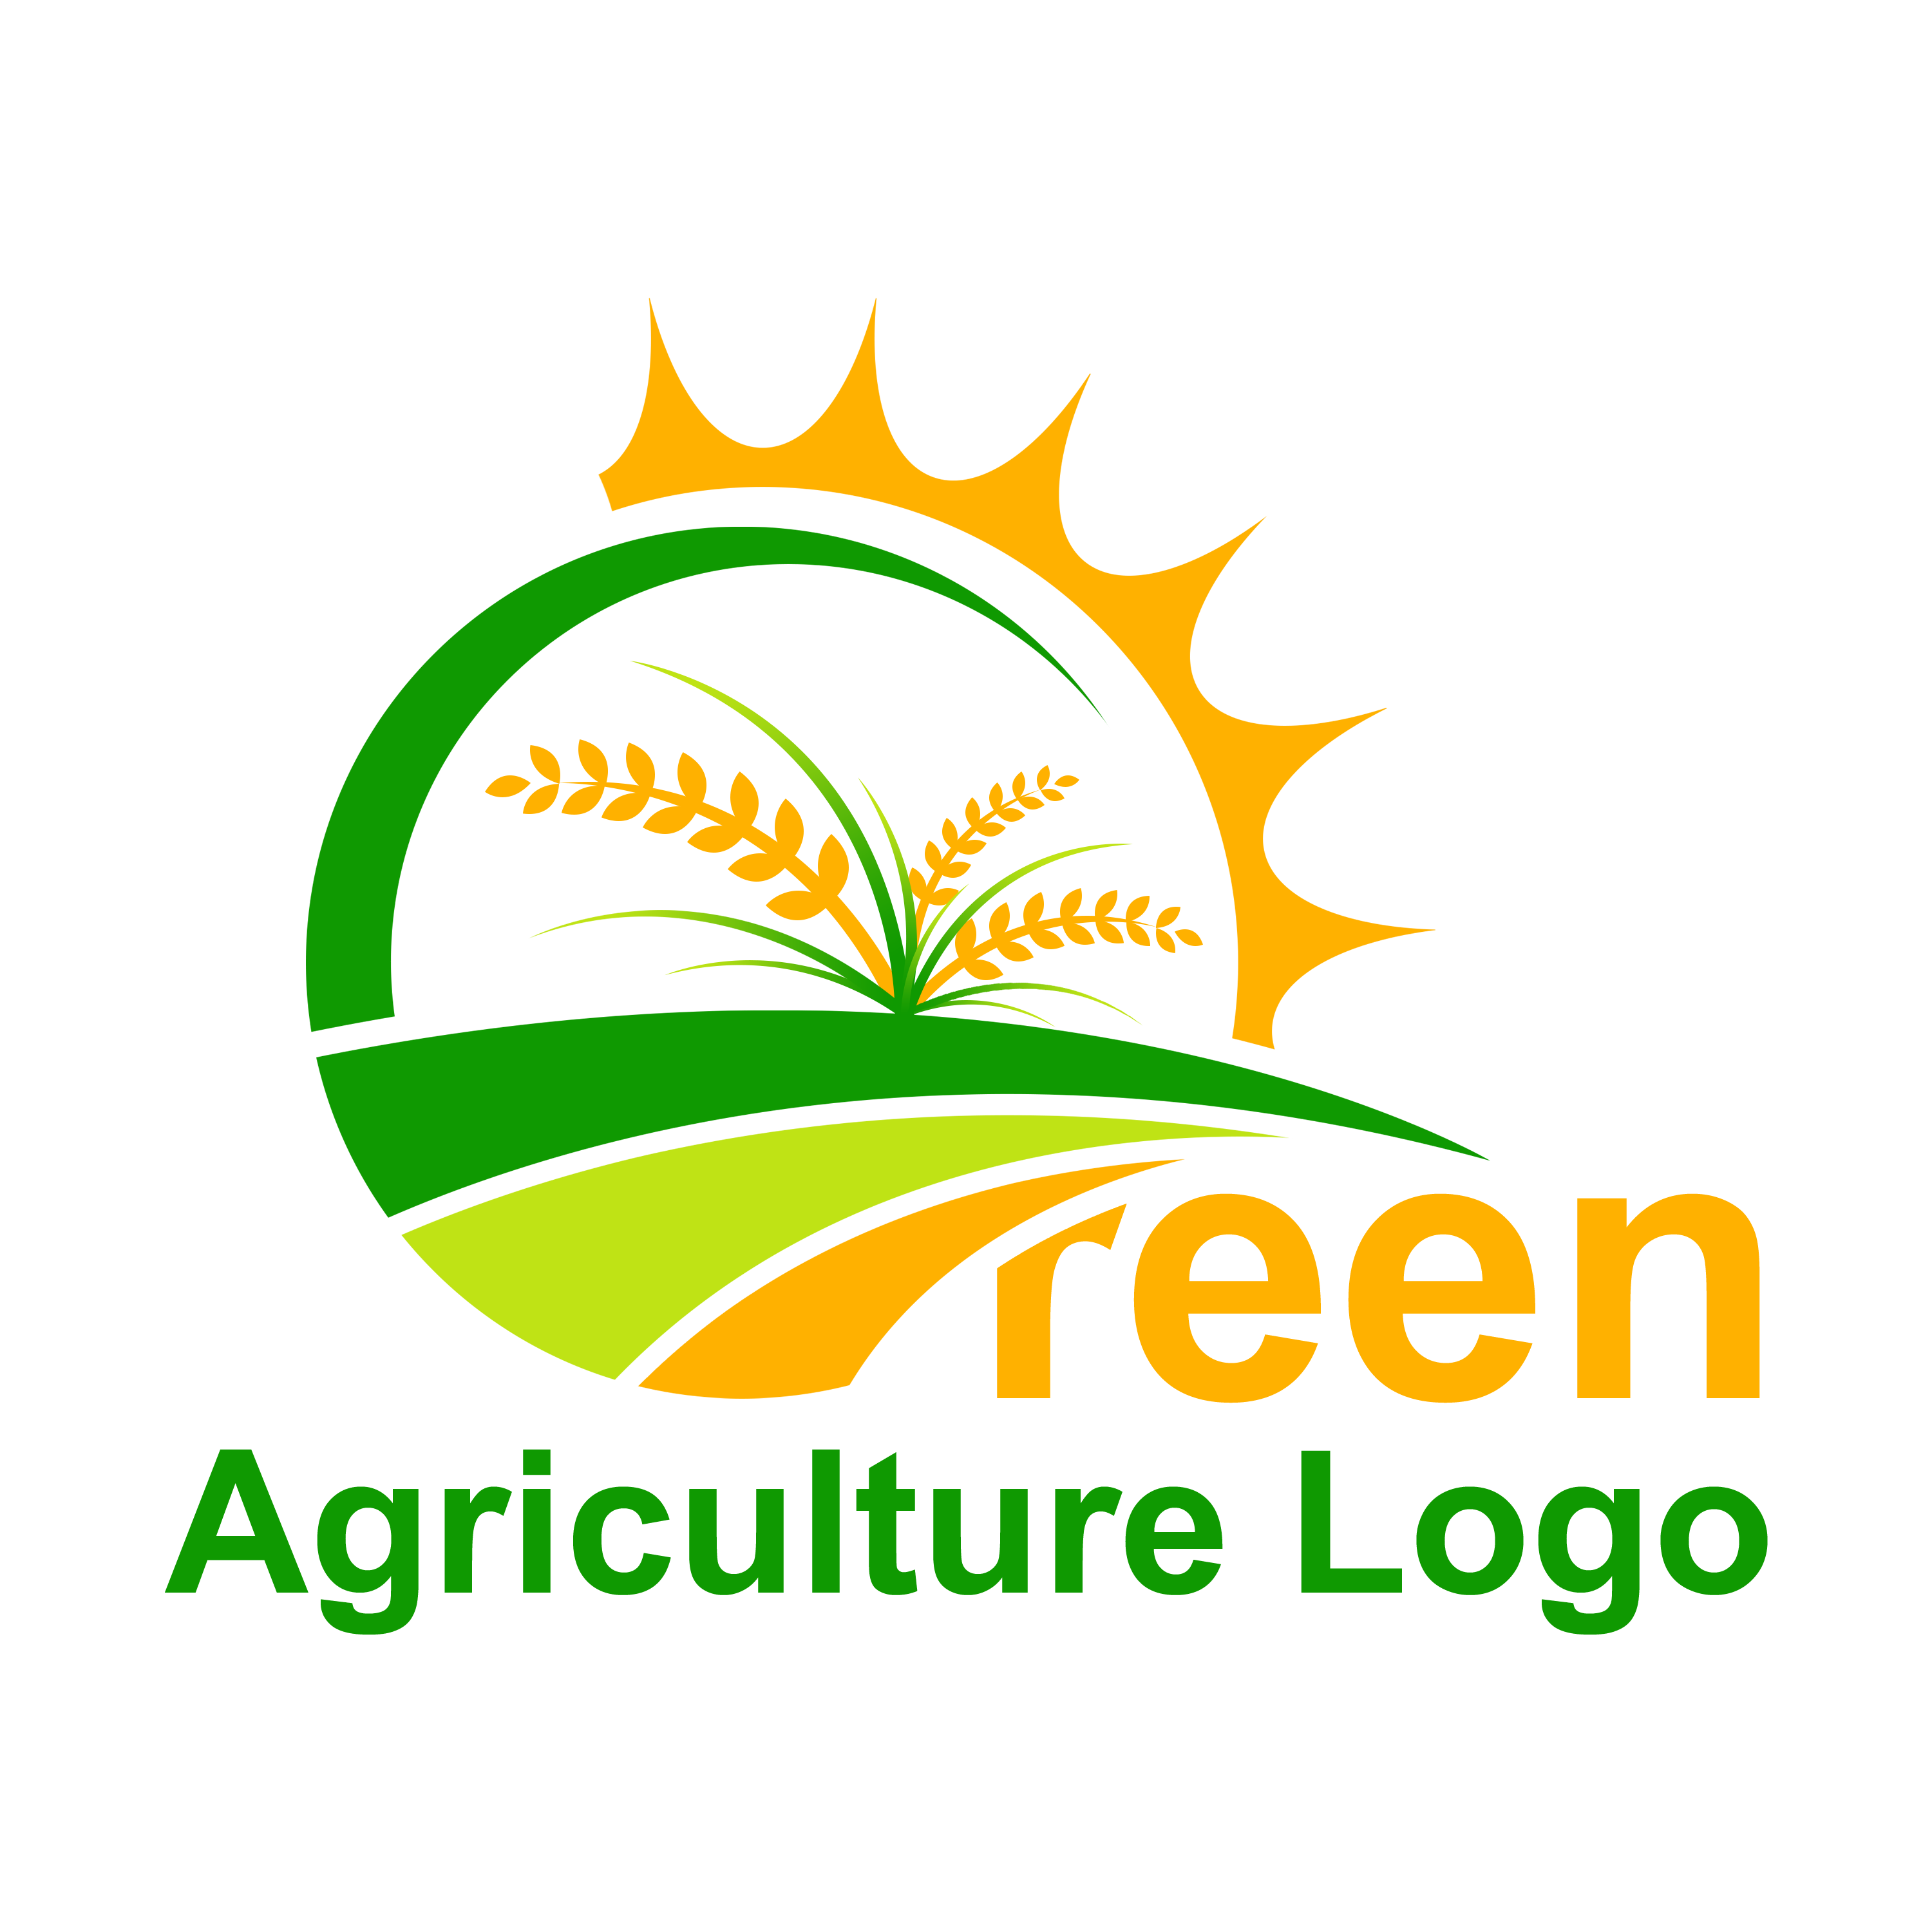 Free Farm Logo Vector - Agriculture Logo Template PNG Transparent